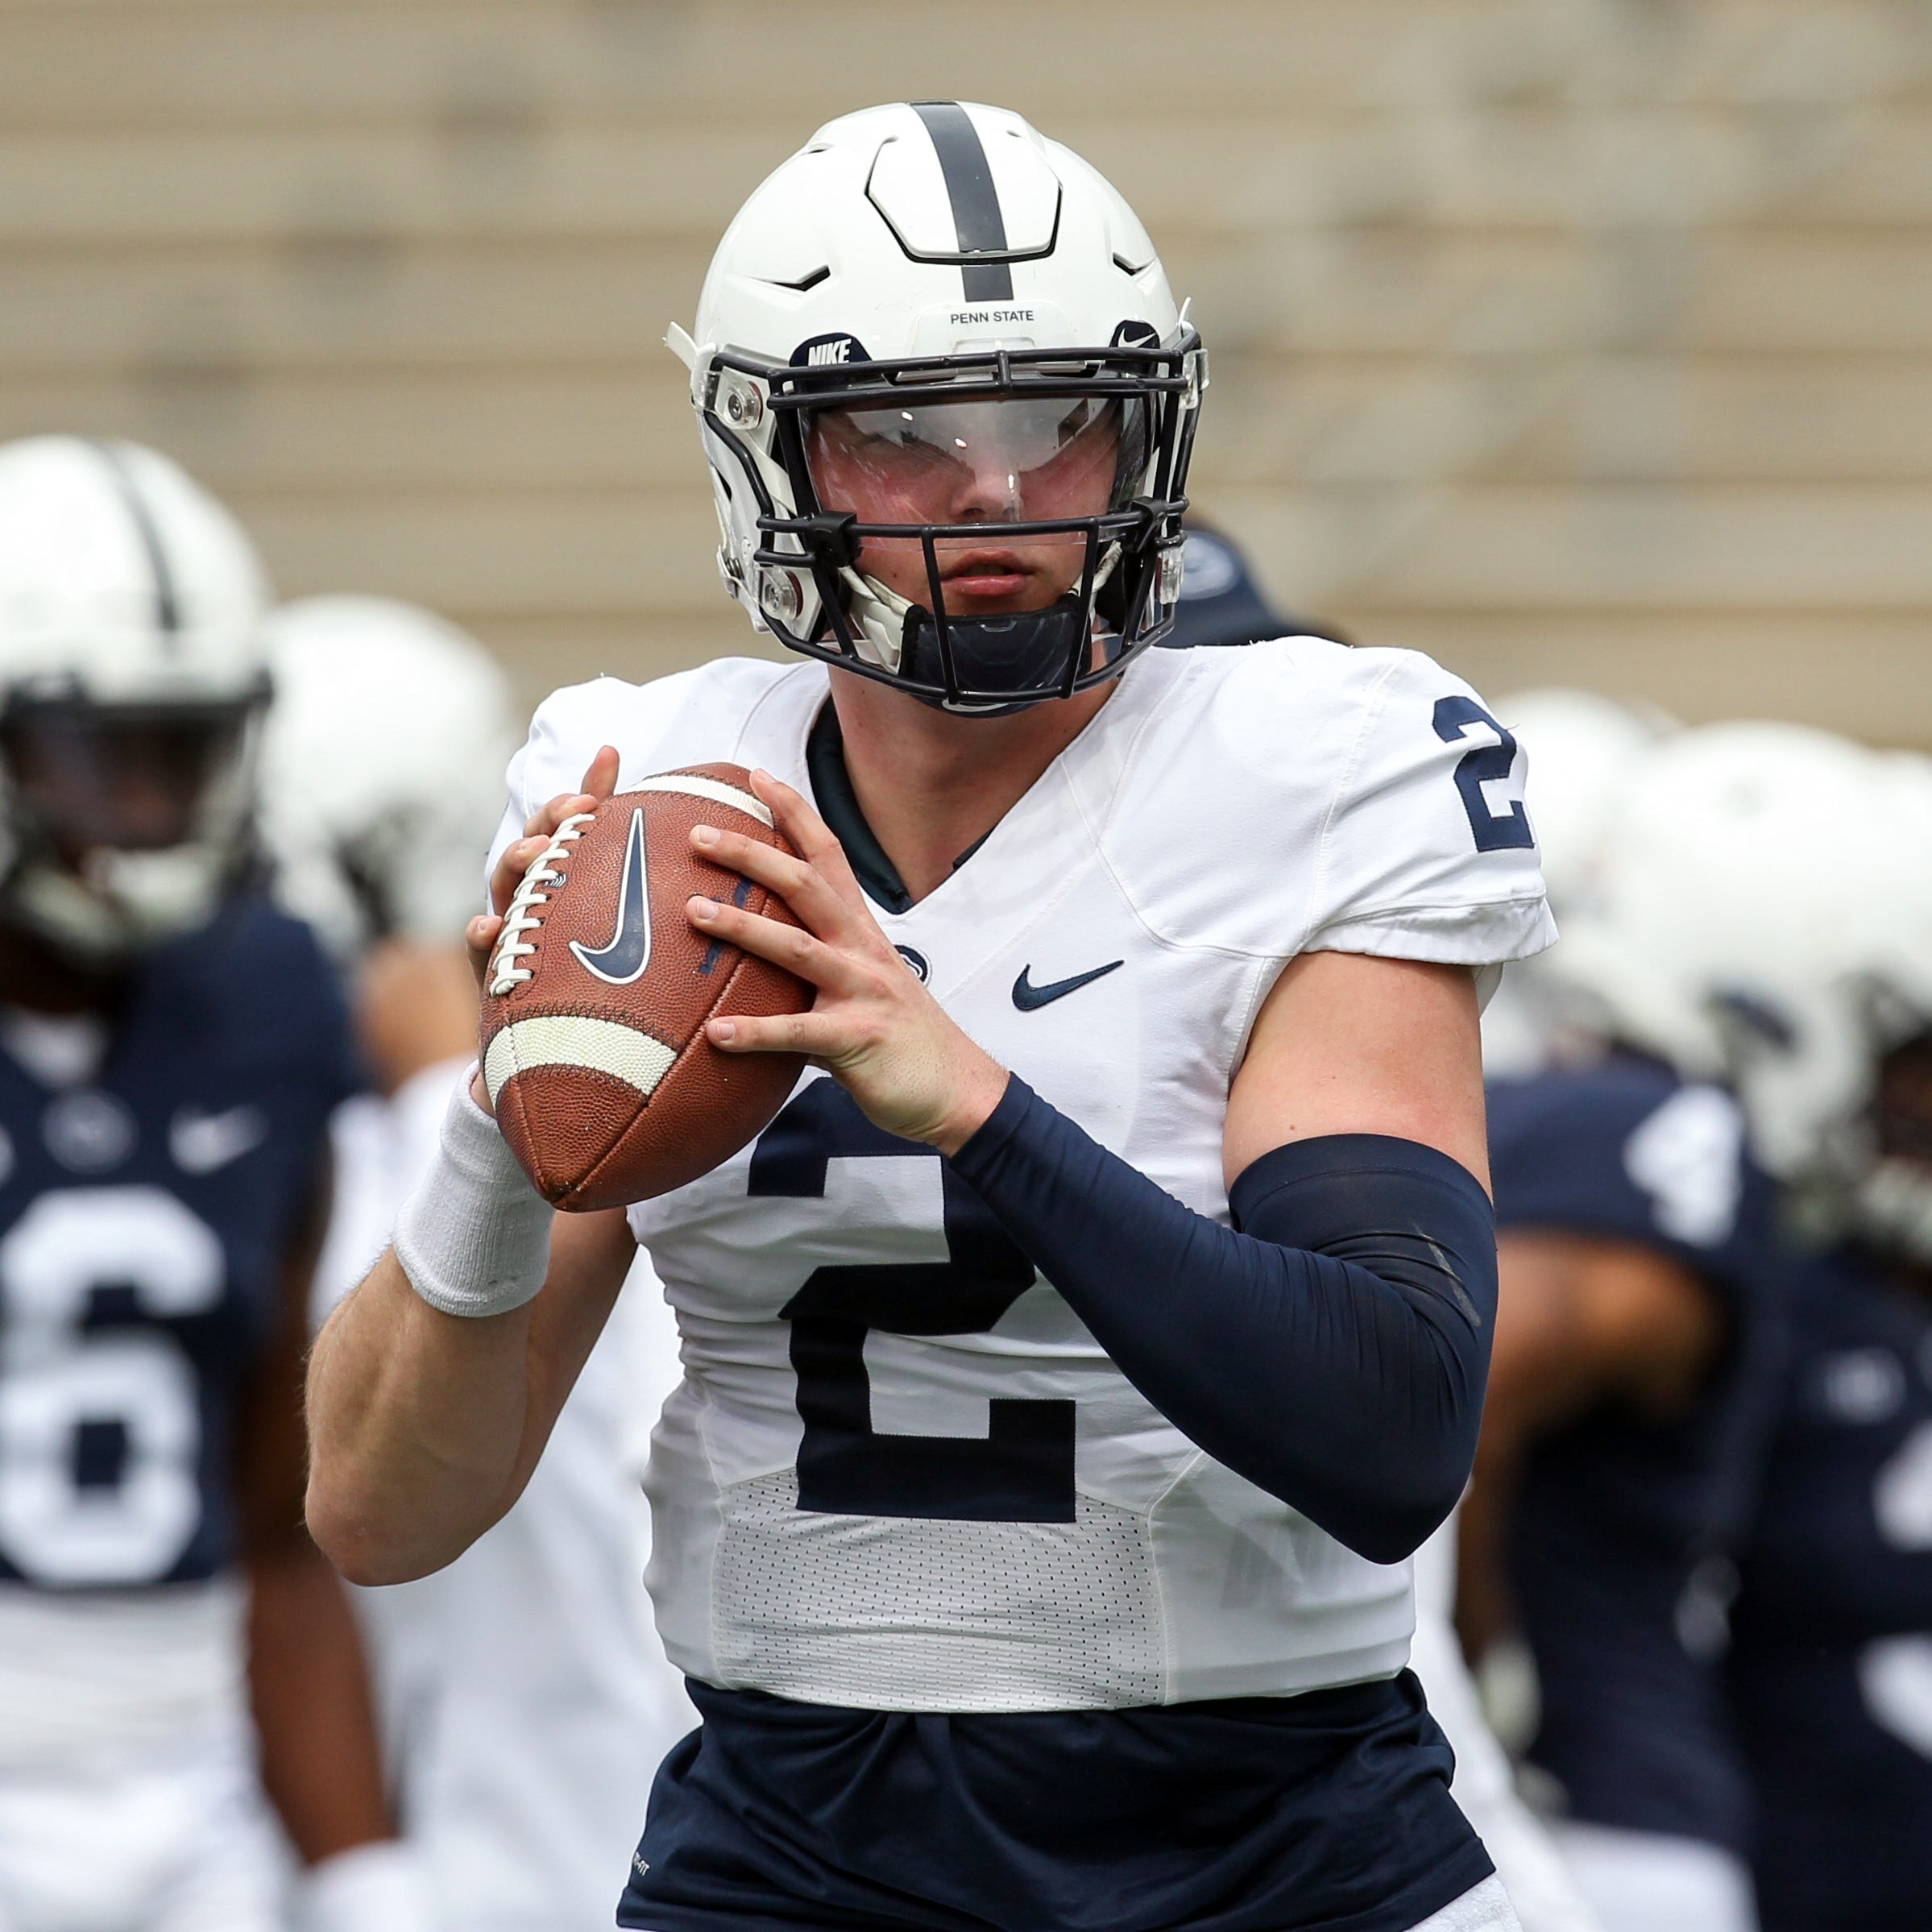 If Tommy Stevens can't buy into Penn State now, he should go